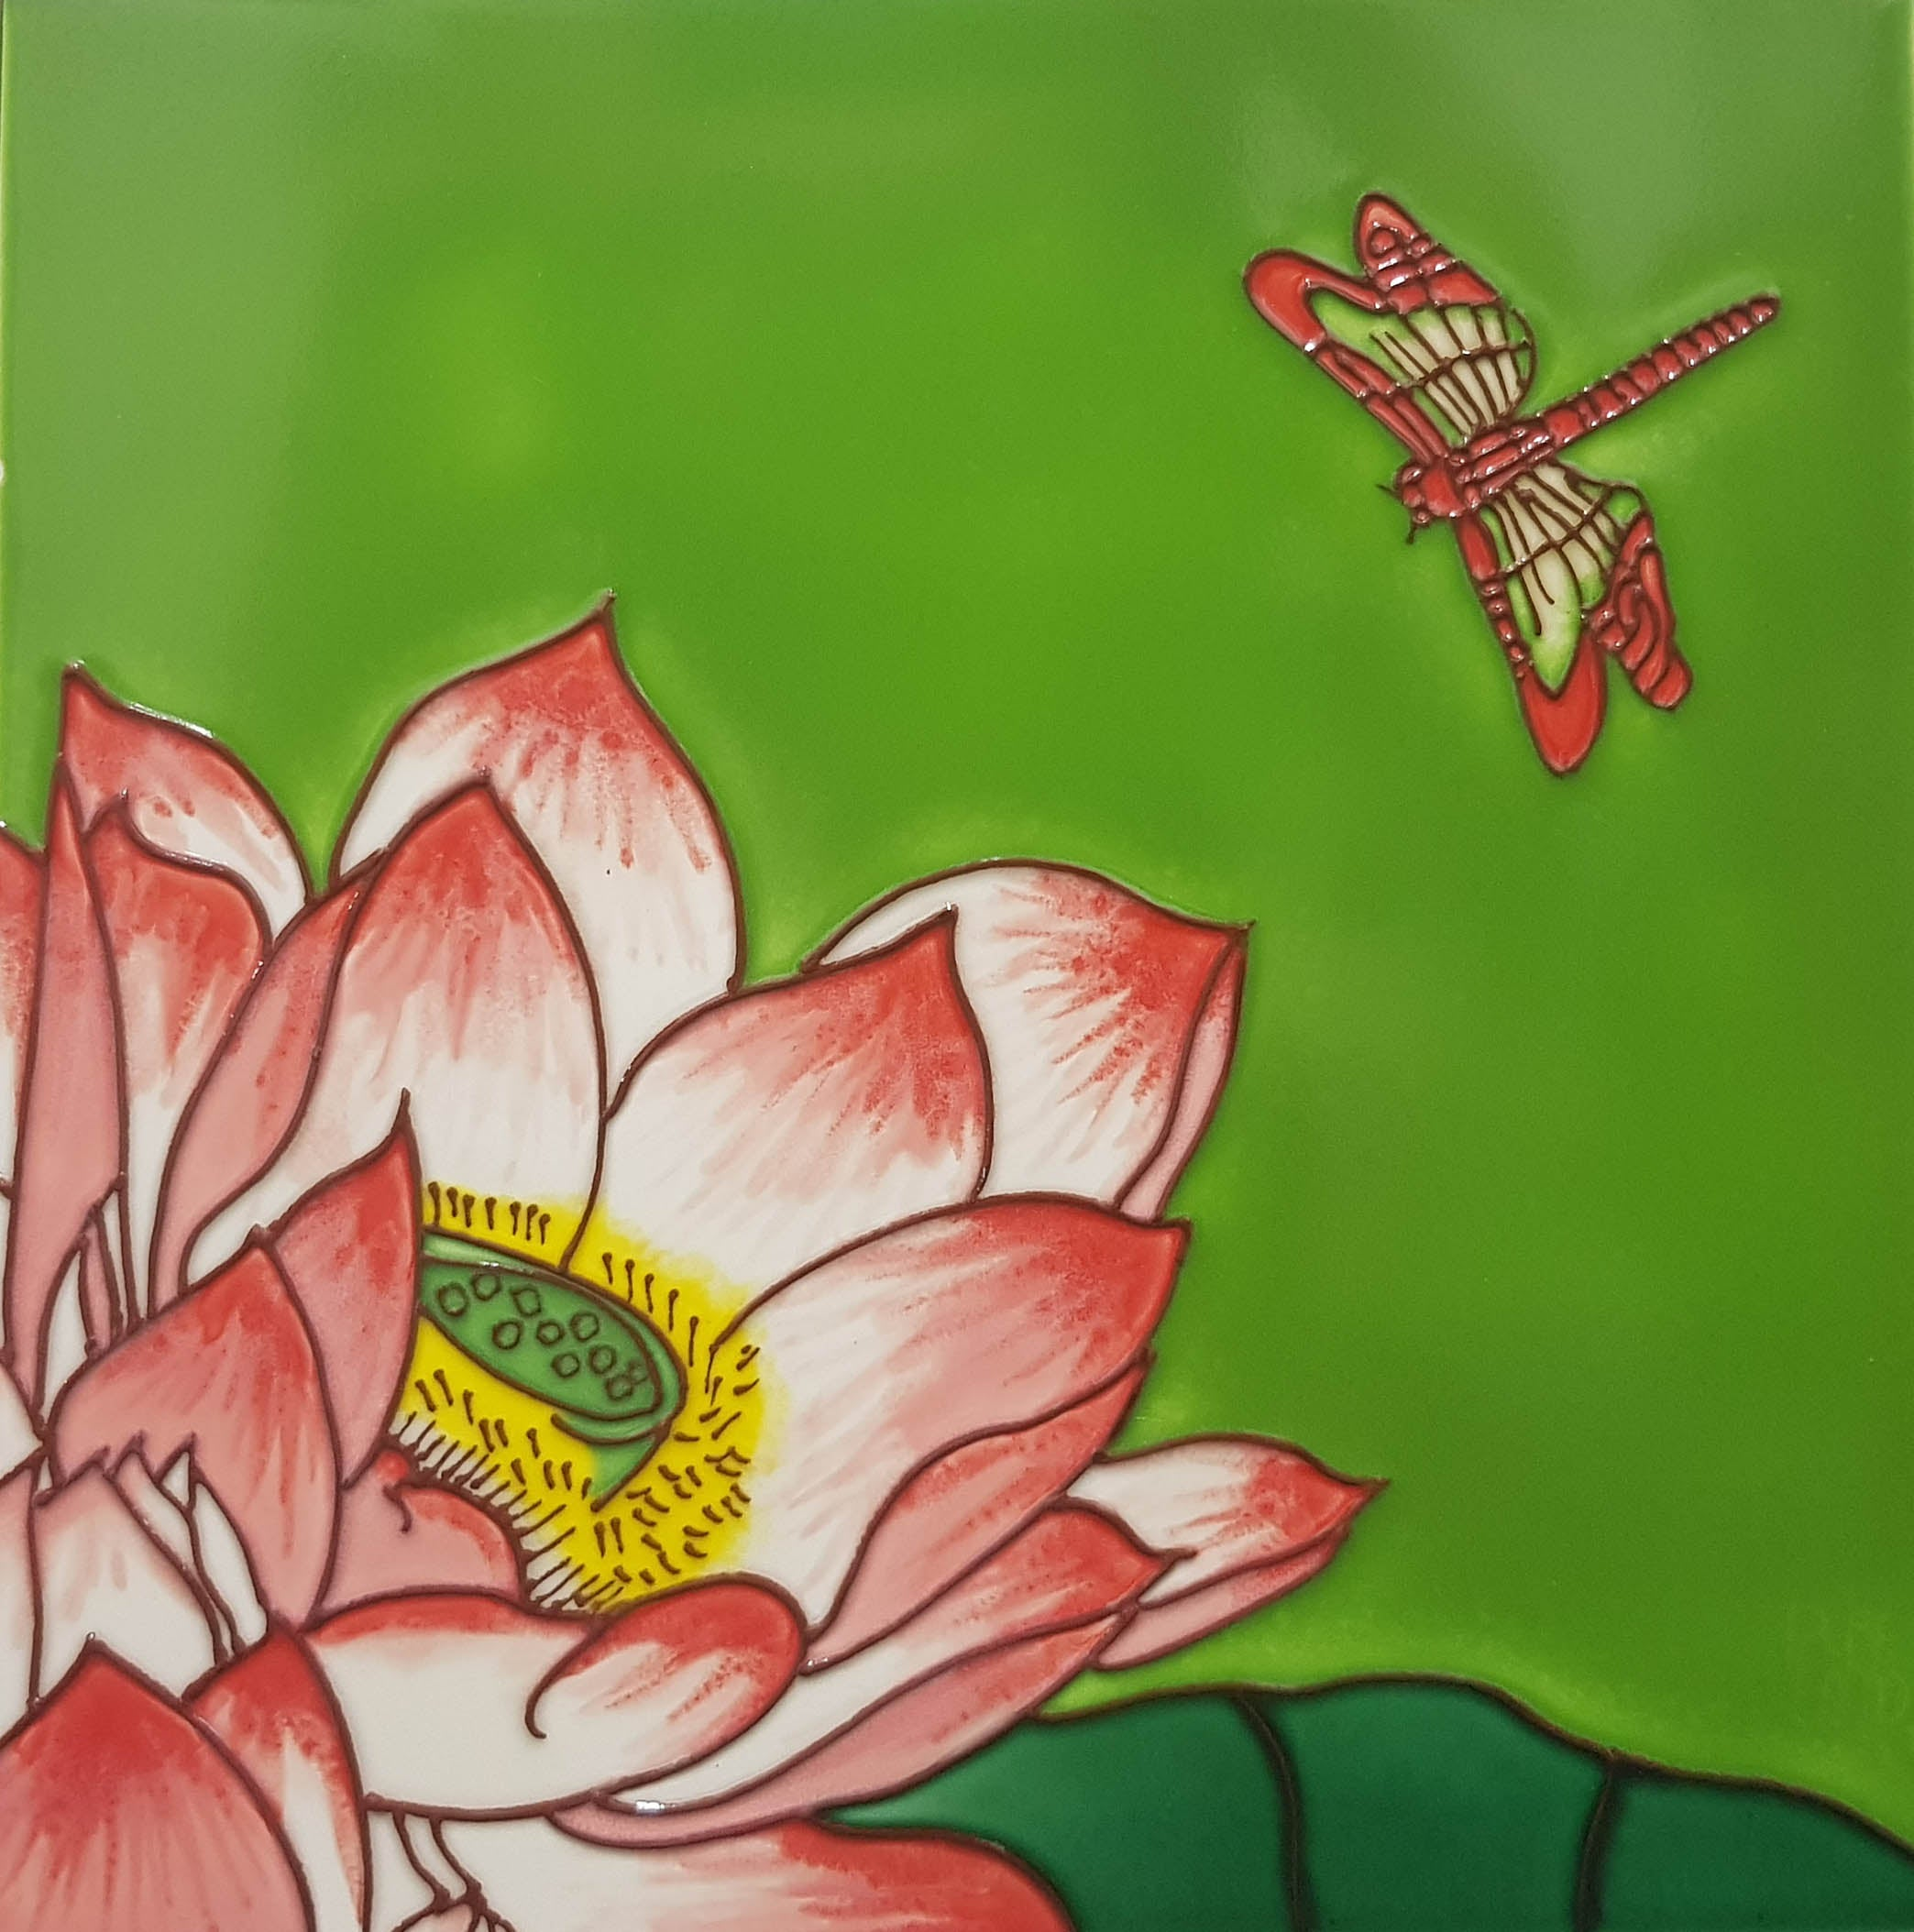 2164 Lotus Flower with Dragonfly Top Right 20cm x 20cm Ceramic Tile